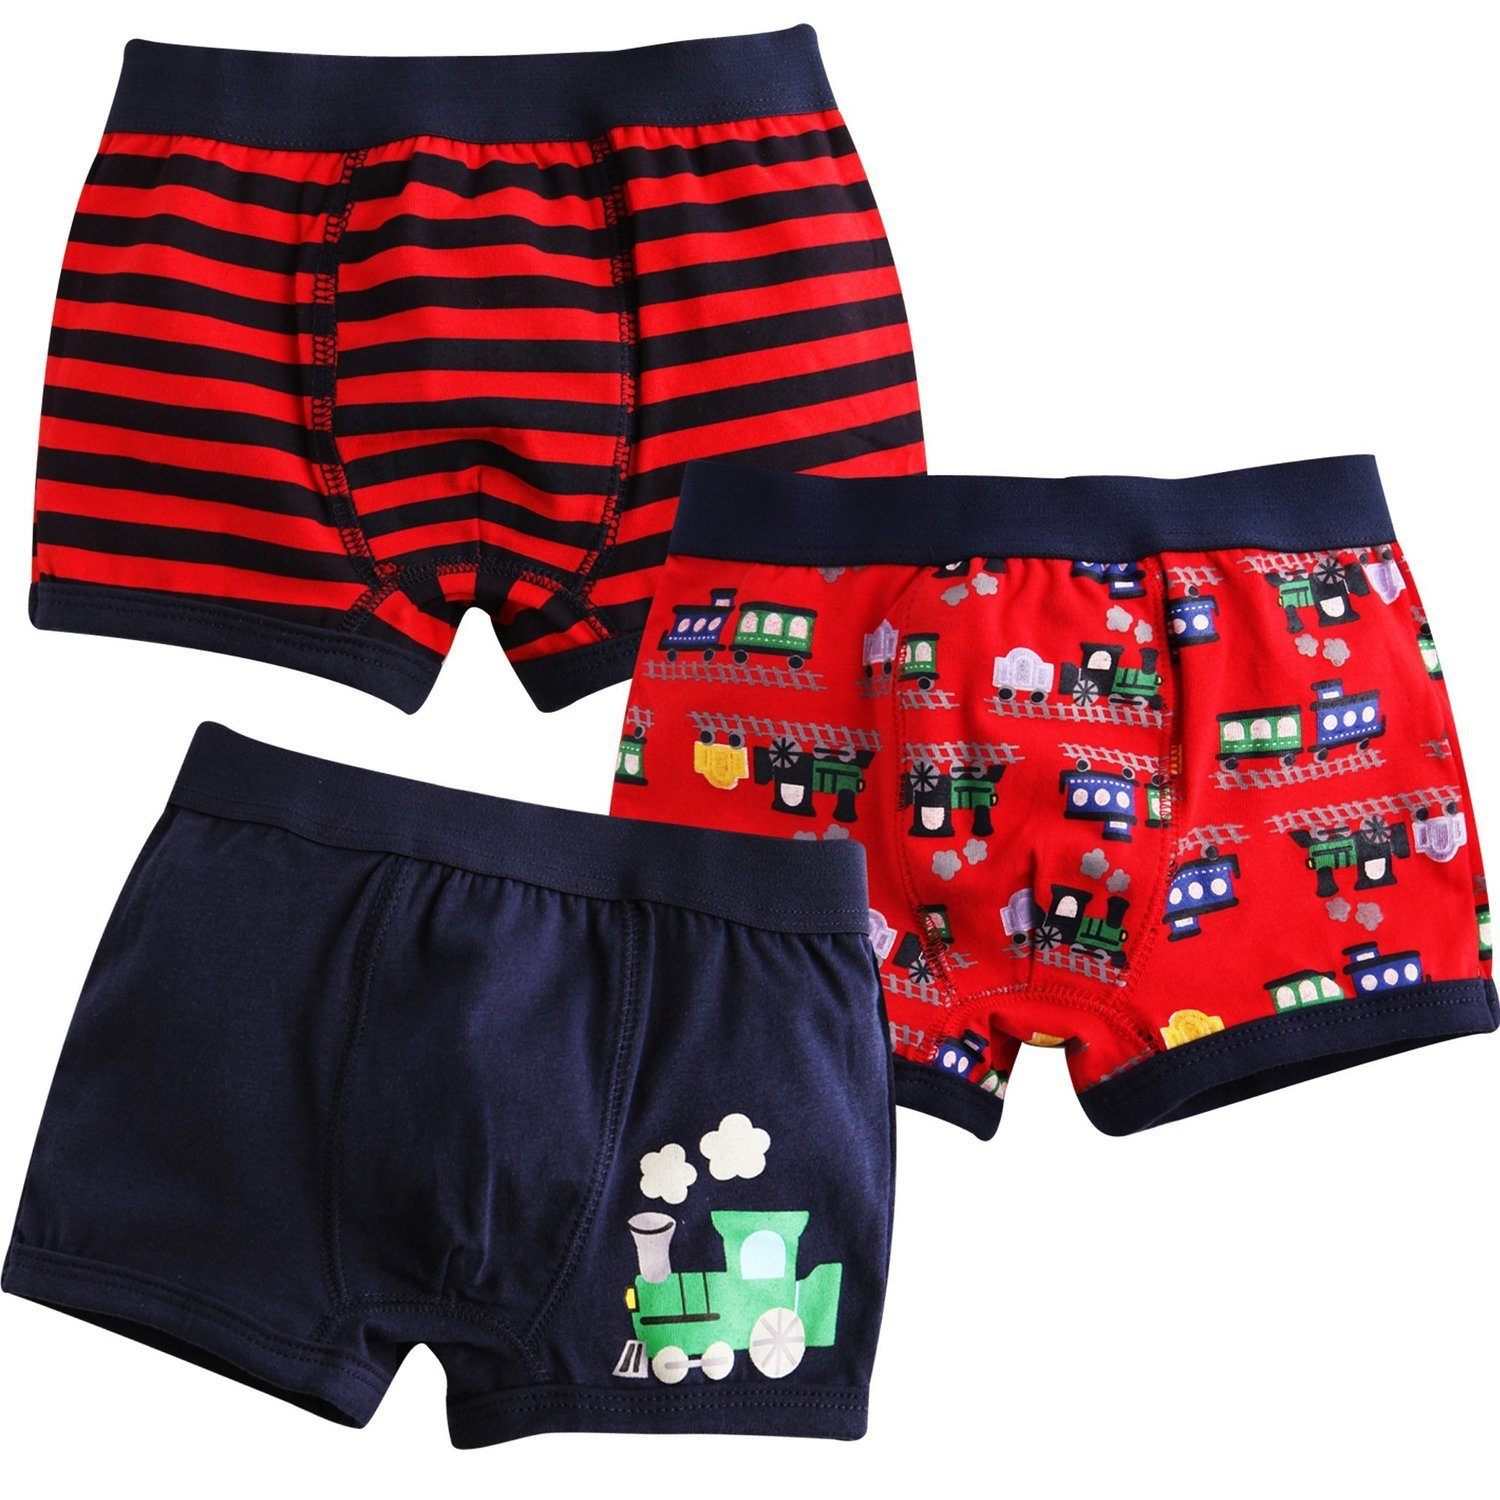 Jojobaby Baby Toddler Kids 2T-7T Boys Boxer Brief 3-Pack Underwear Set G9-Q4CU-E20C